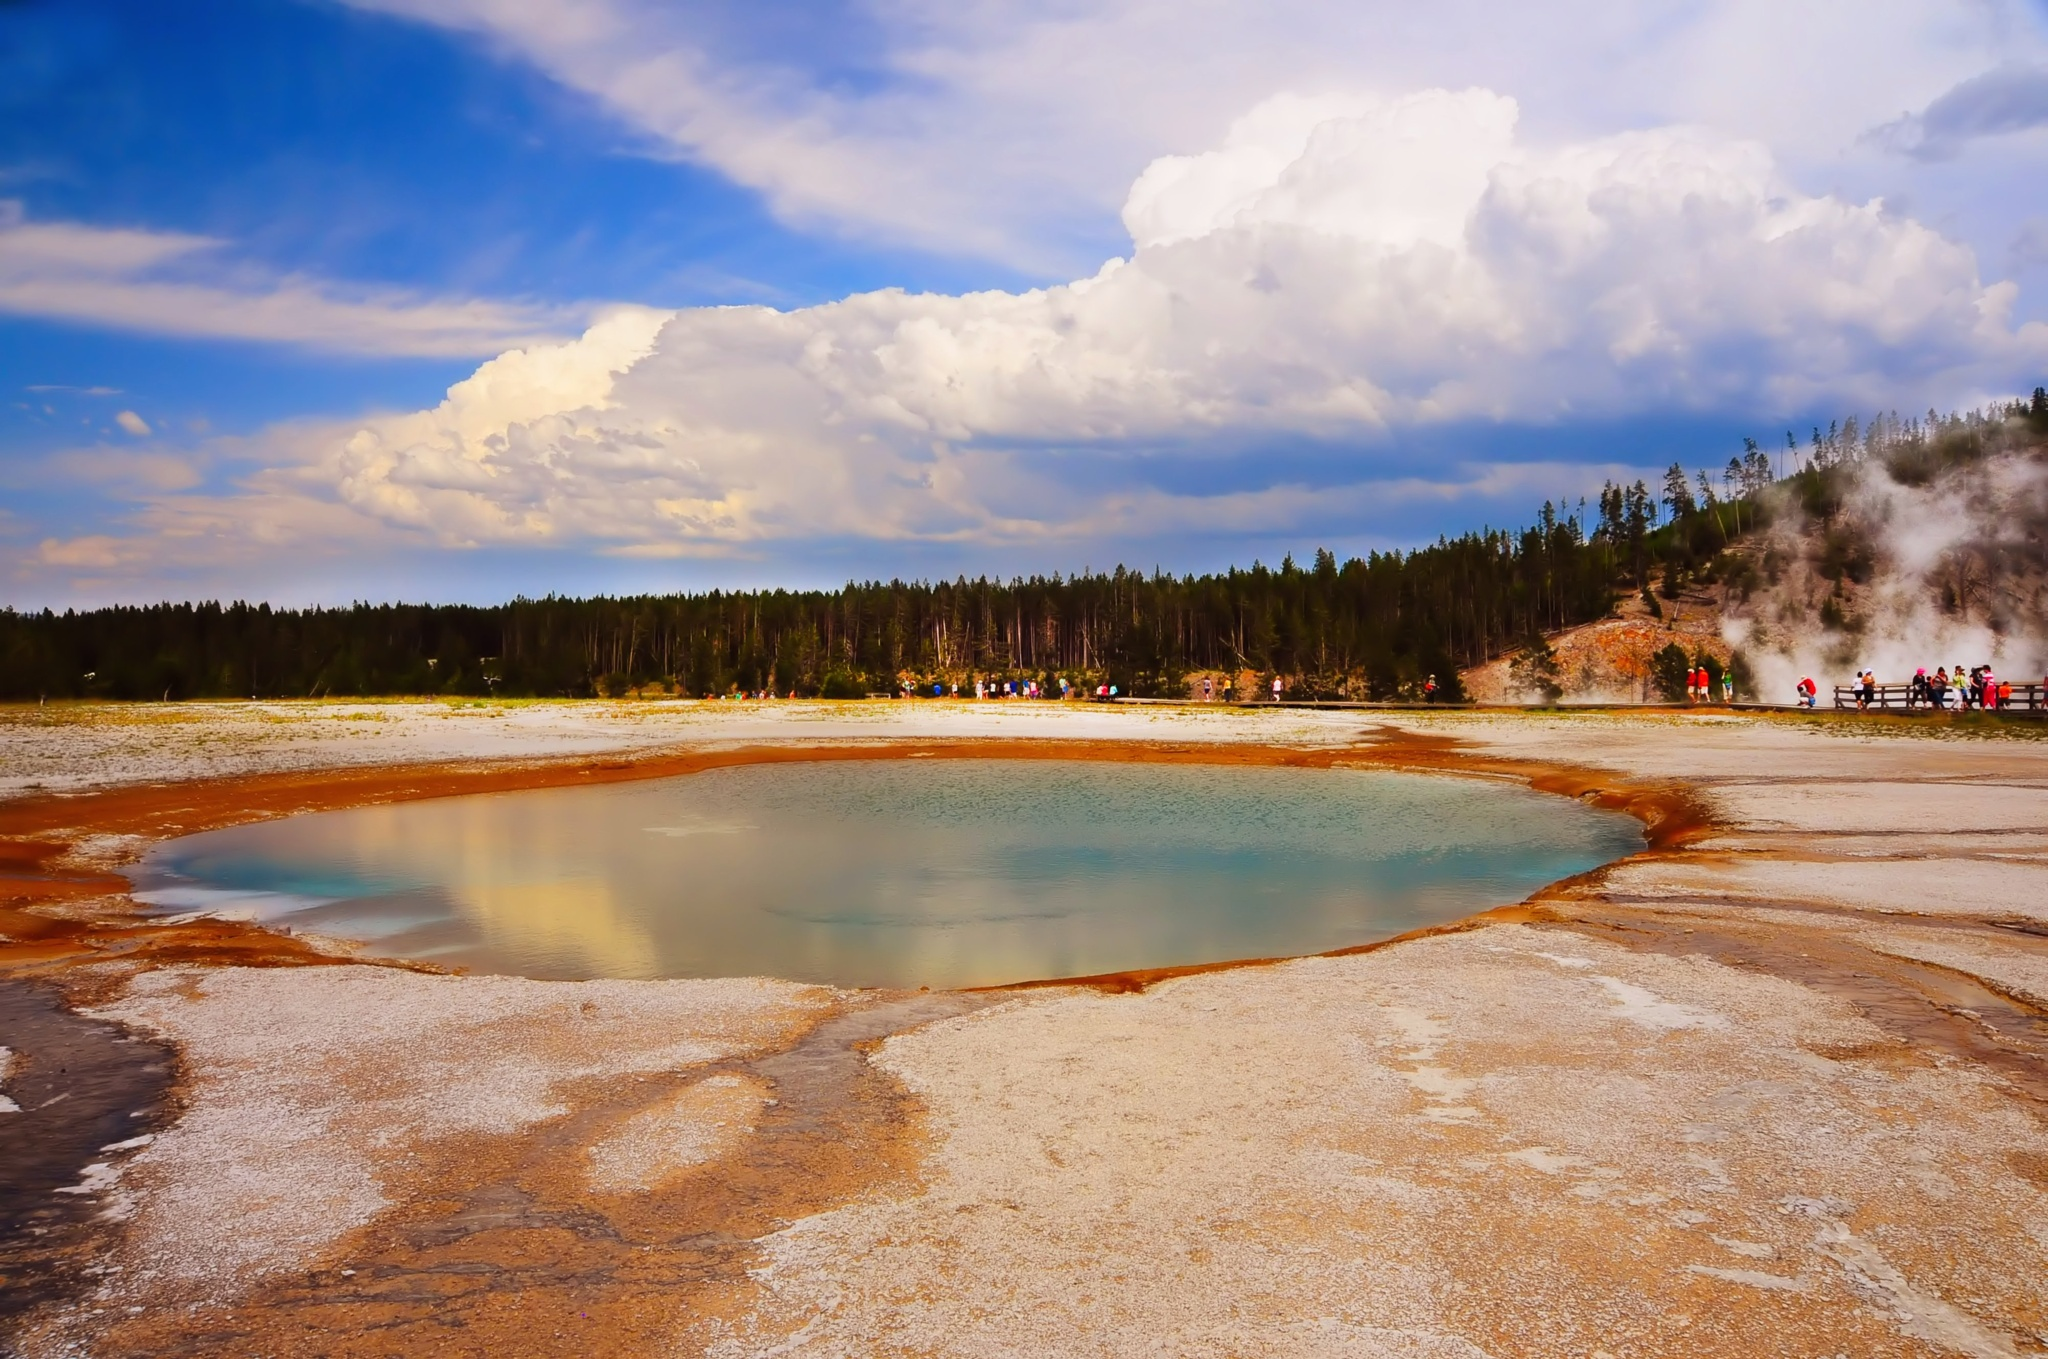 West Yellowstone National Park - Old favorite by Nelson Sibulo